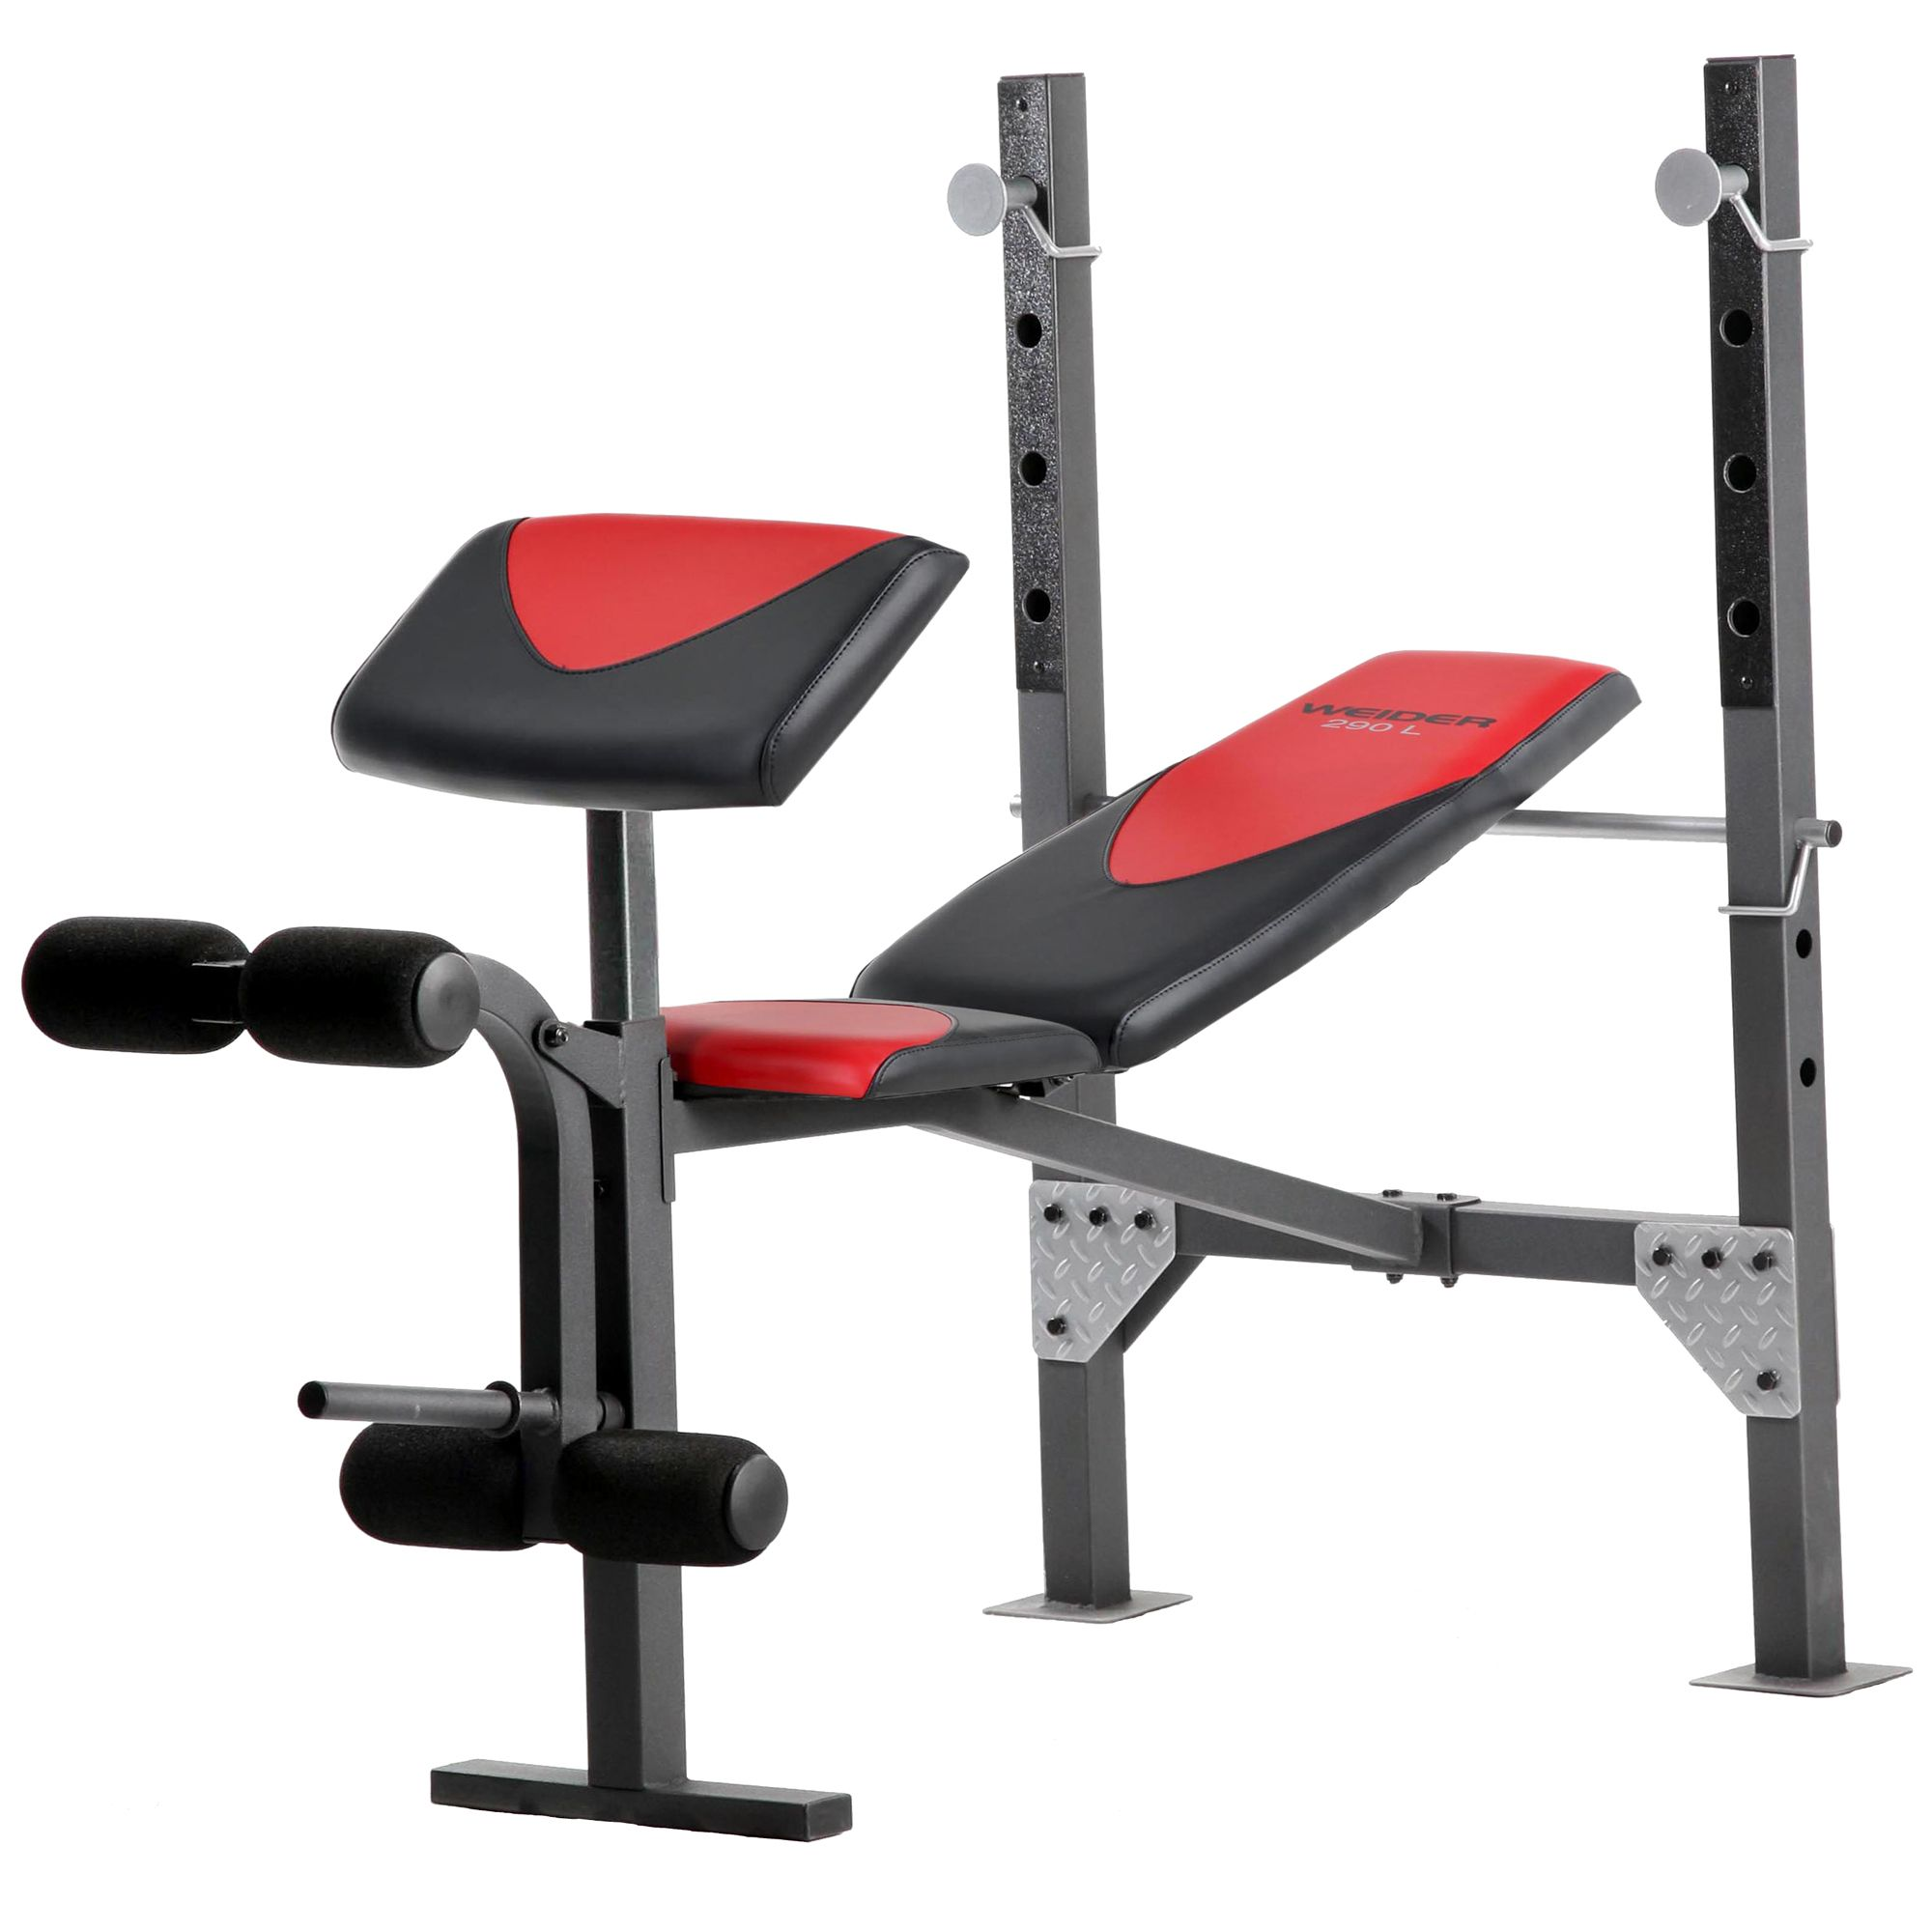 Weider Weight Bench Pro 270 L Fitness Amp Sports Fitness